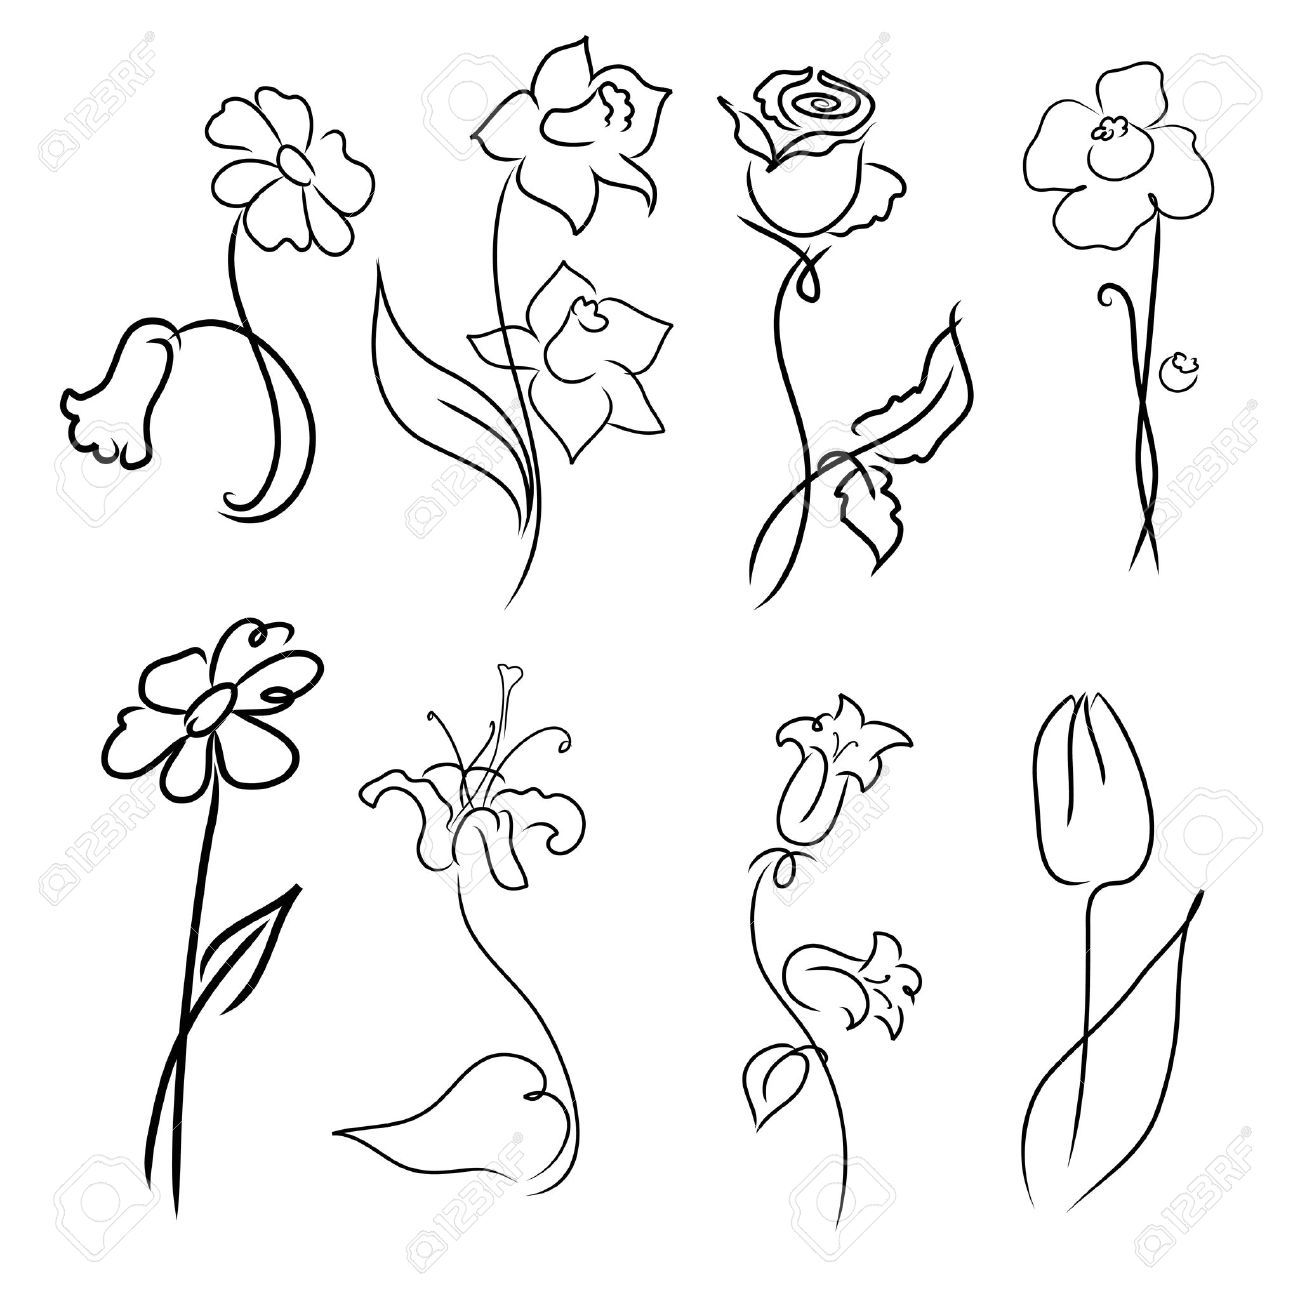 Simple Flower Designs For Pencil Drawing Gallery